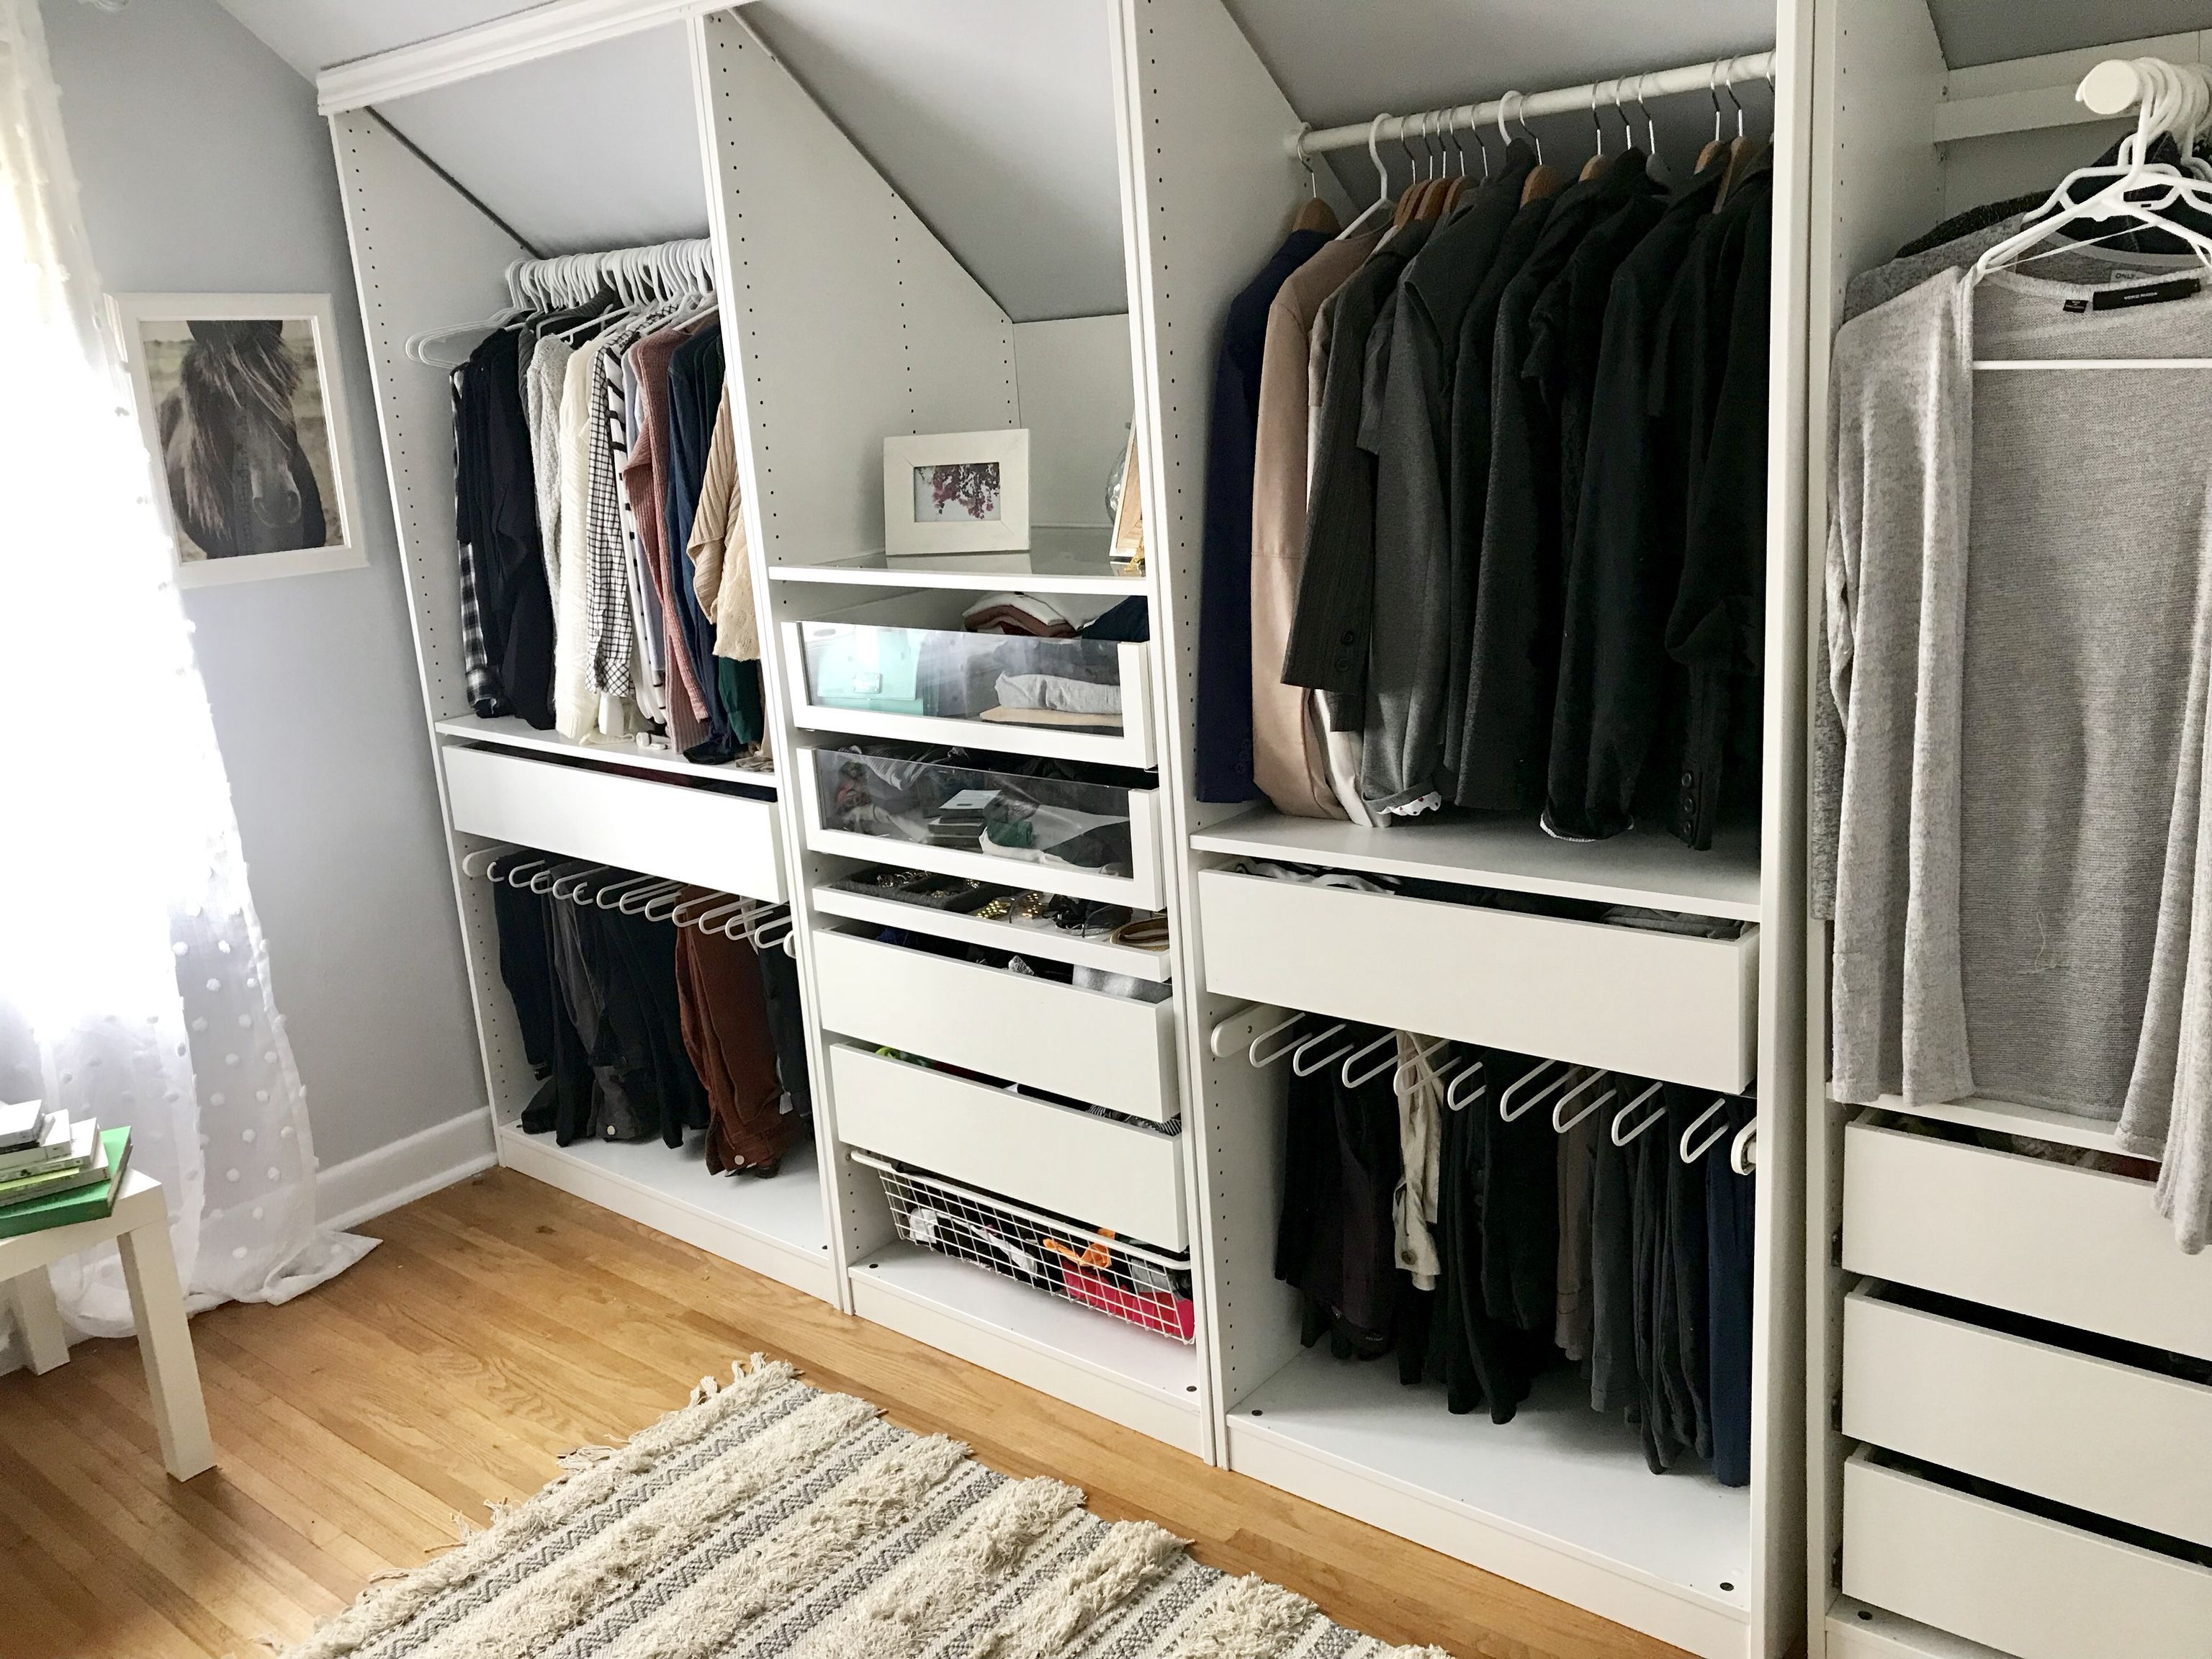 Ikea.de Küchenplaner Login Custom Ikea Closet For Sloped Room - Welcome To Blog | Ikea Closet, Master Bedroom Closet, Ikea Closet Hack